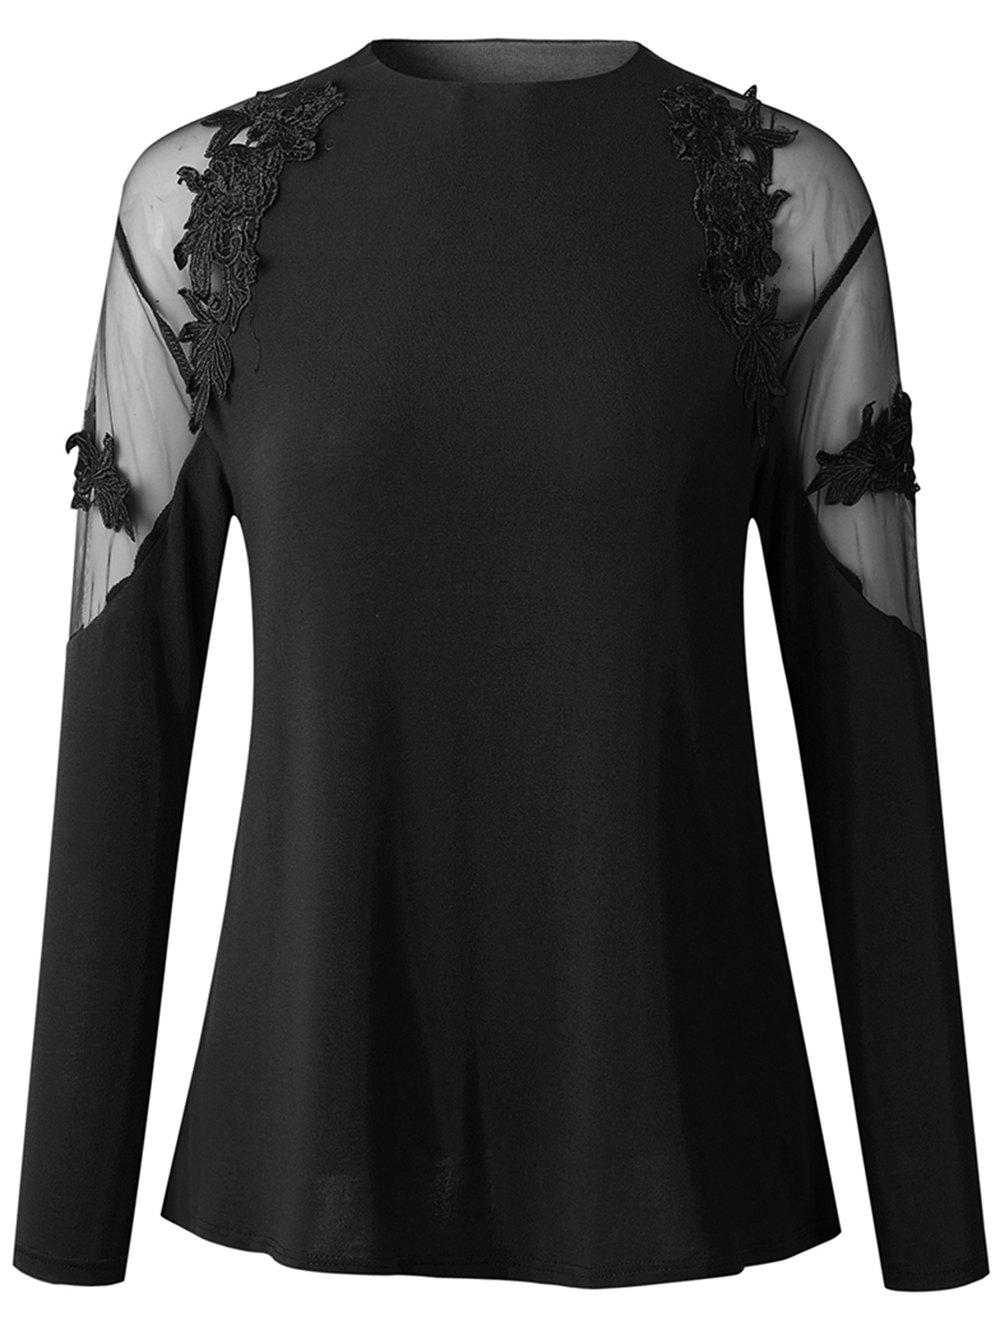 Shops 2019 New Womens Fashion lace Long Sleeve Shirt  Tops